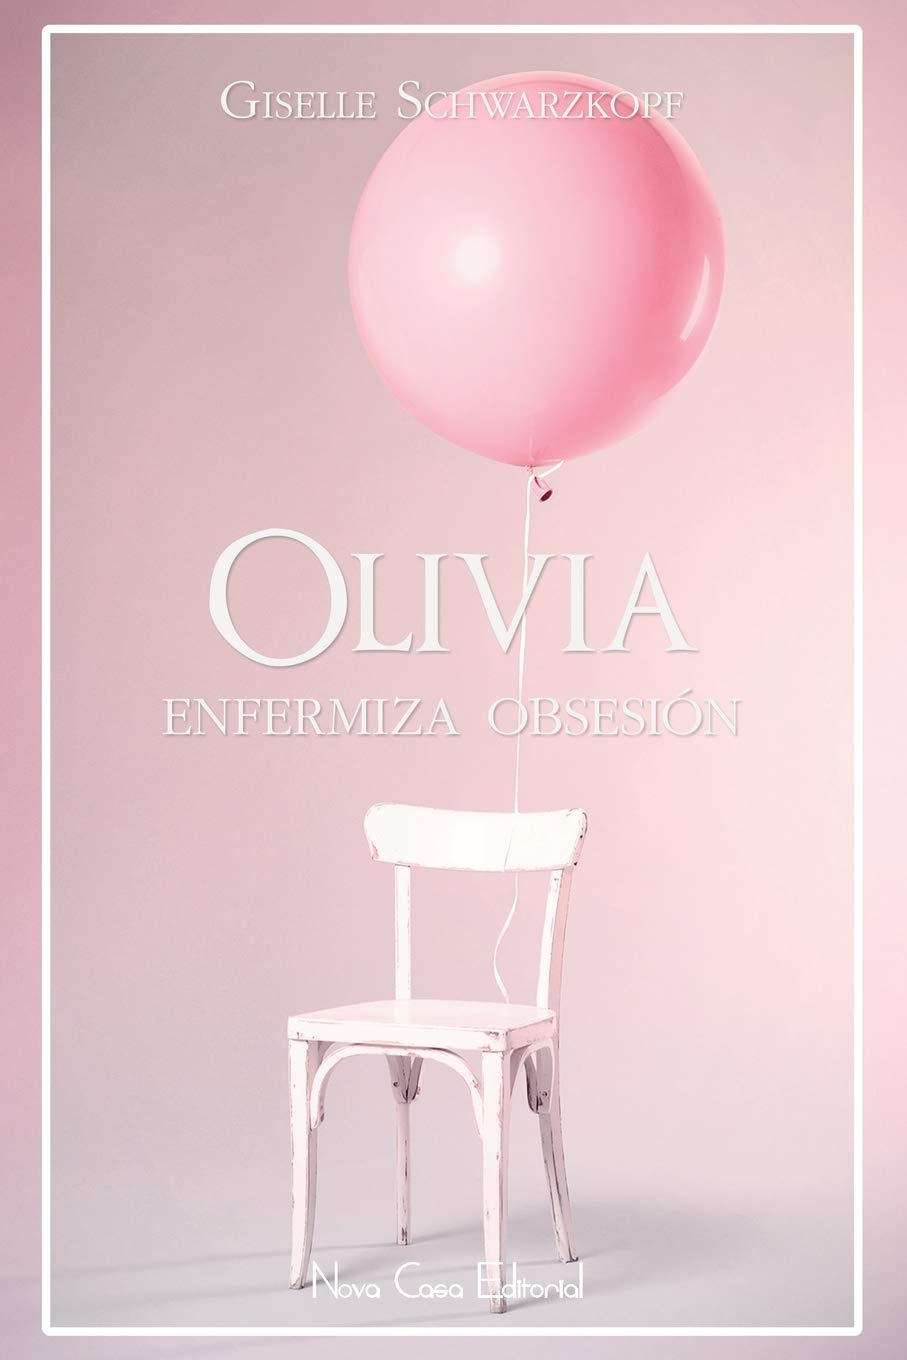 Olivia (Spanish Edition): Giselle Schwarzkopf: 9788416942596: Amazon.com: Books